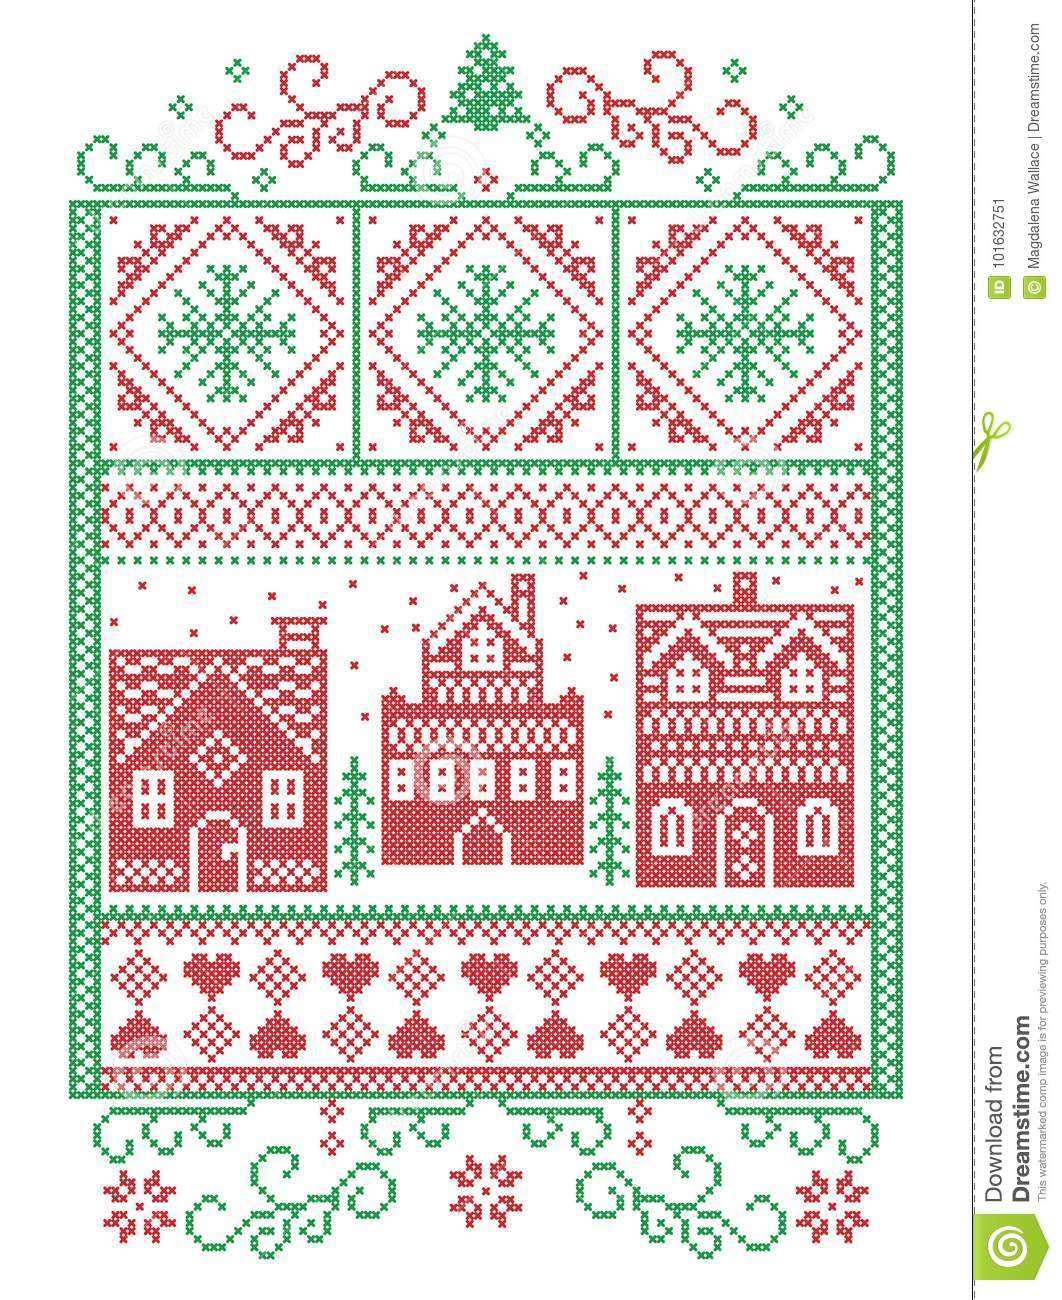 Christmas Scandinavian, Nordic style winter stitching, pattern including snowflake, heart, winter wonderland village, gingerbread